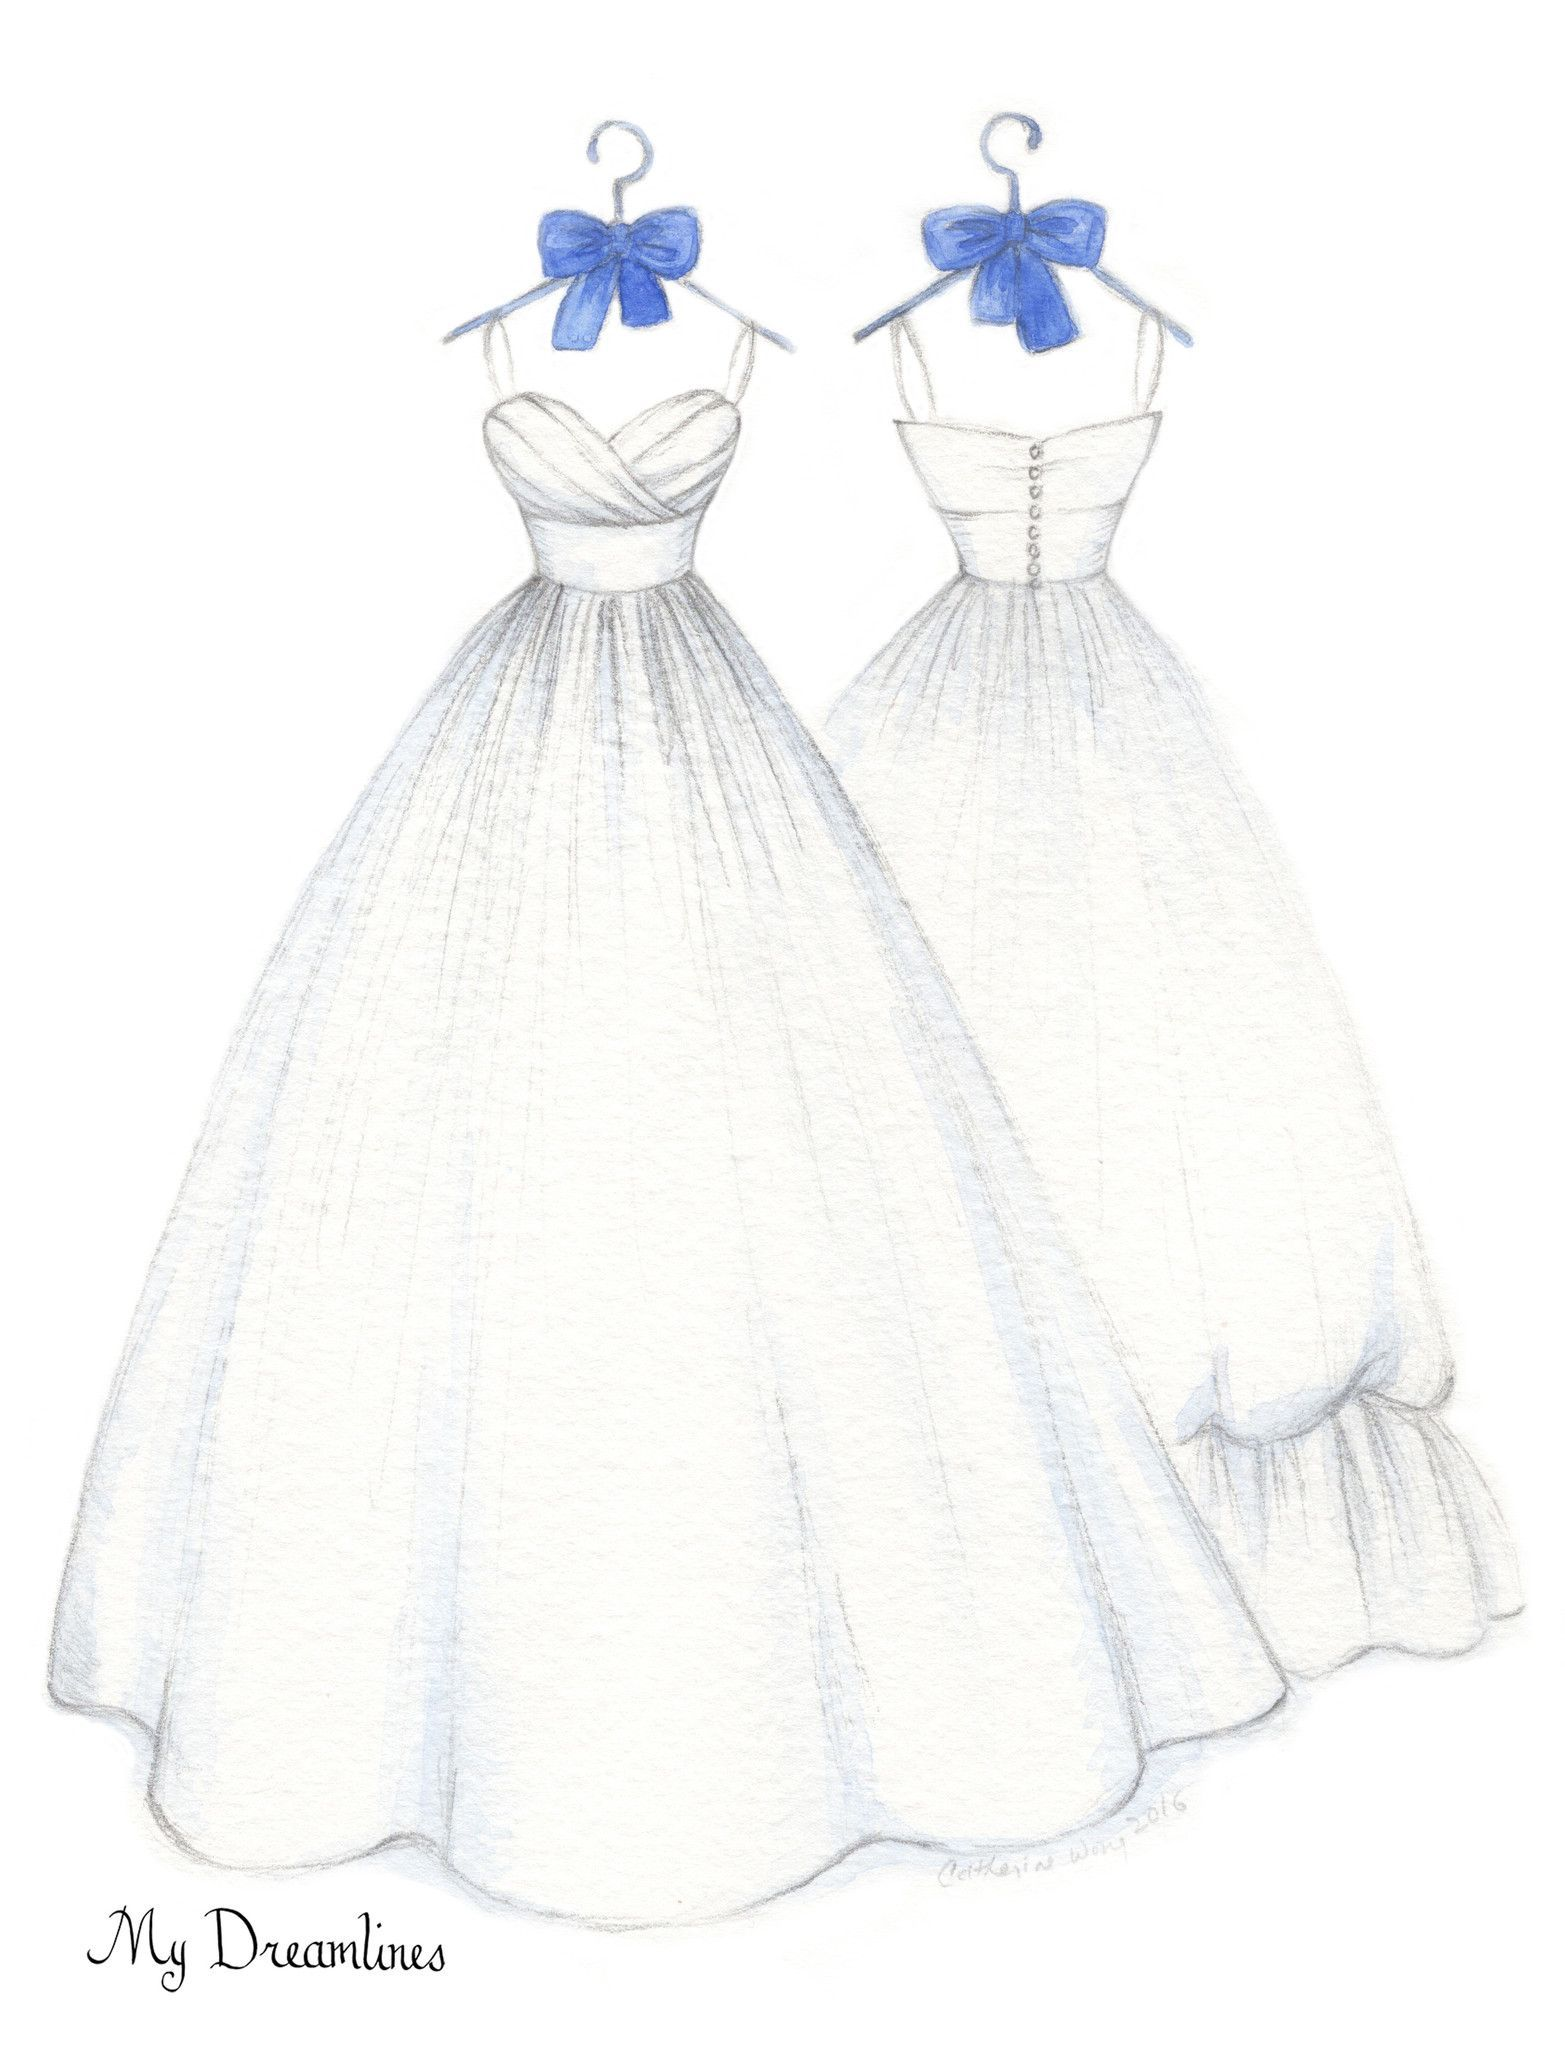 One year anniversary gift personal wedding dress front u back